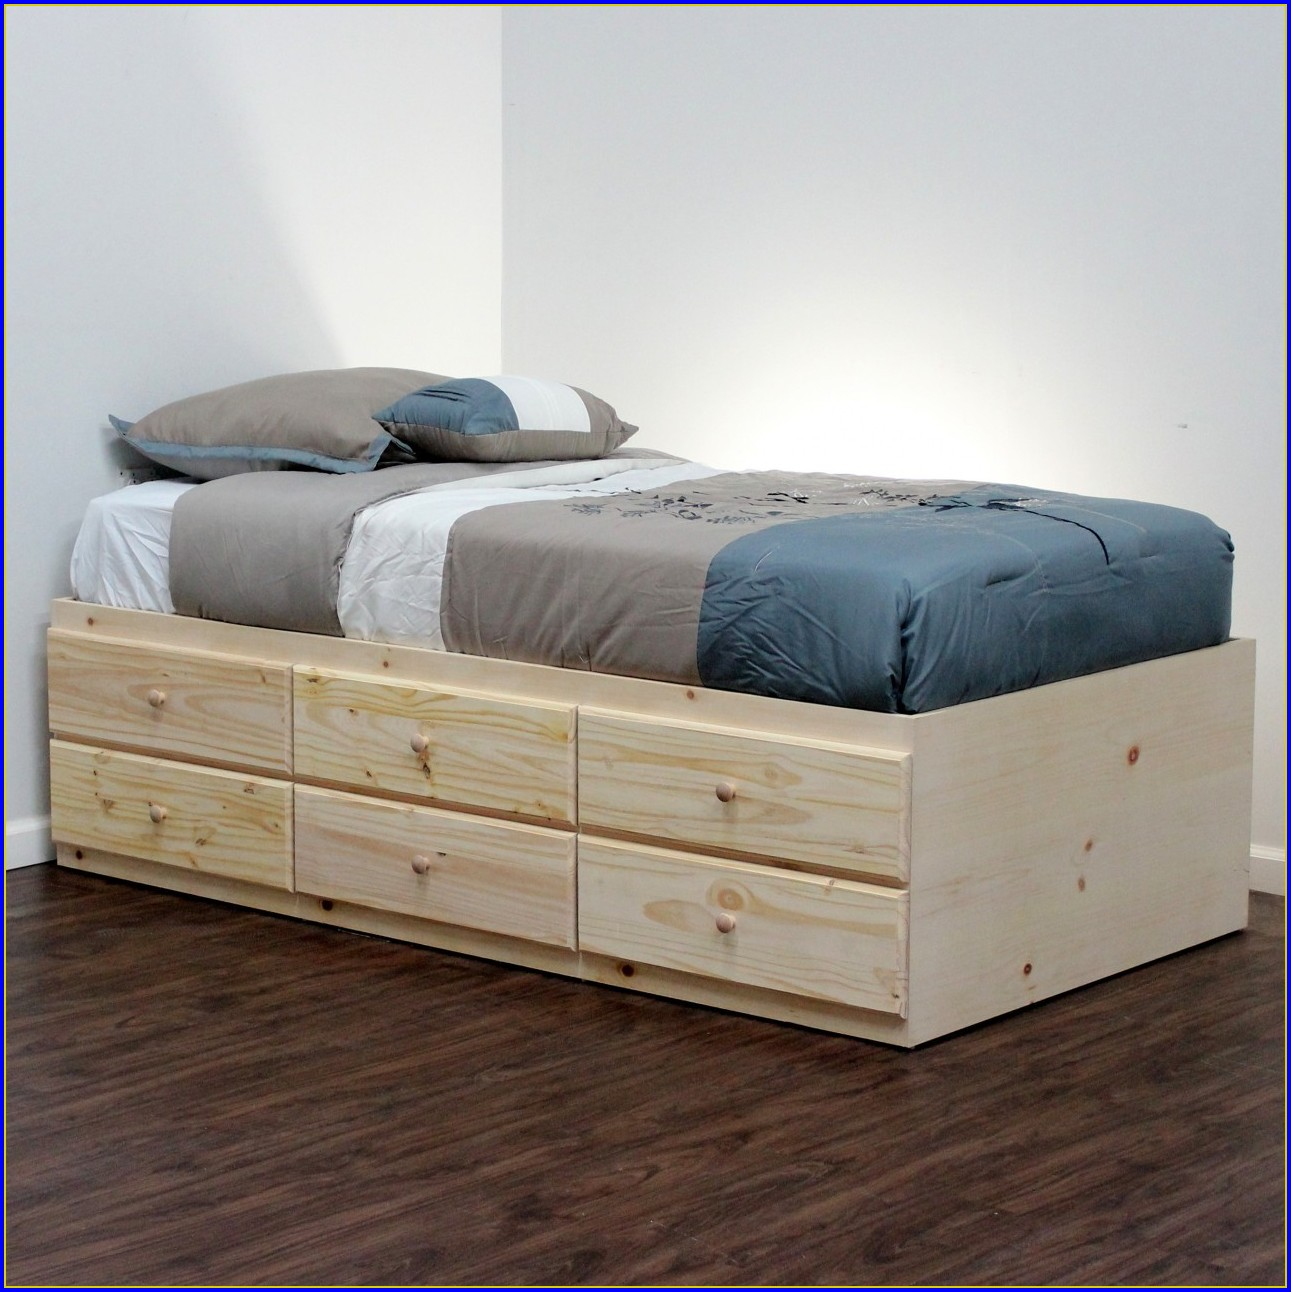 Bed Frame With Drawers On One Side